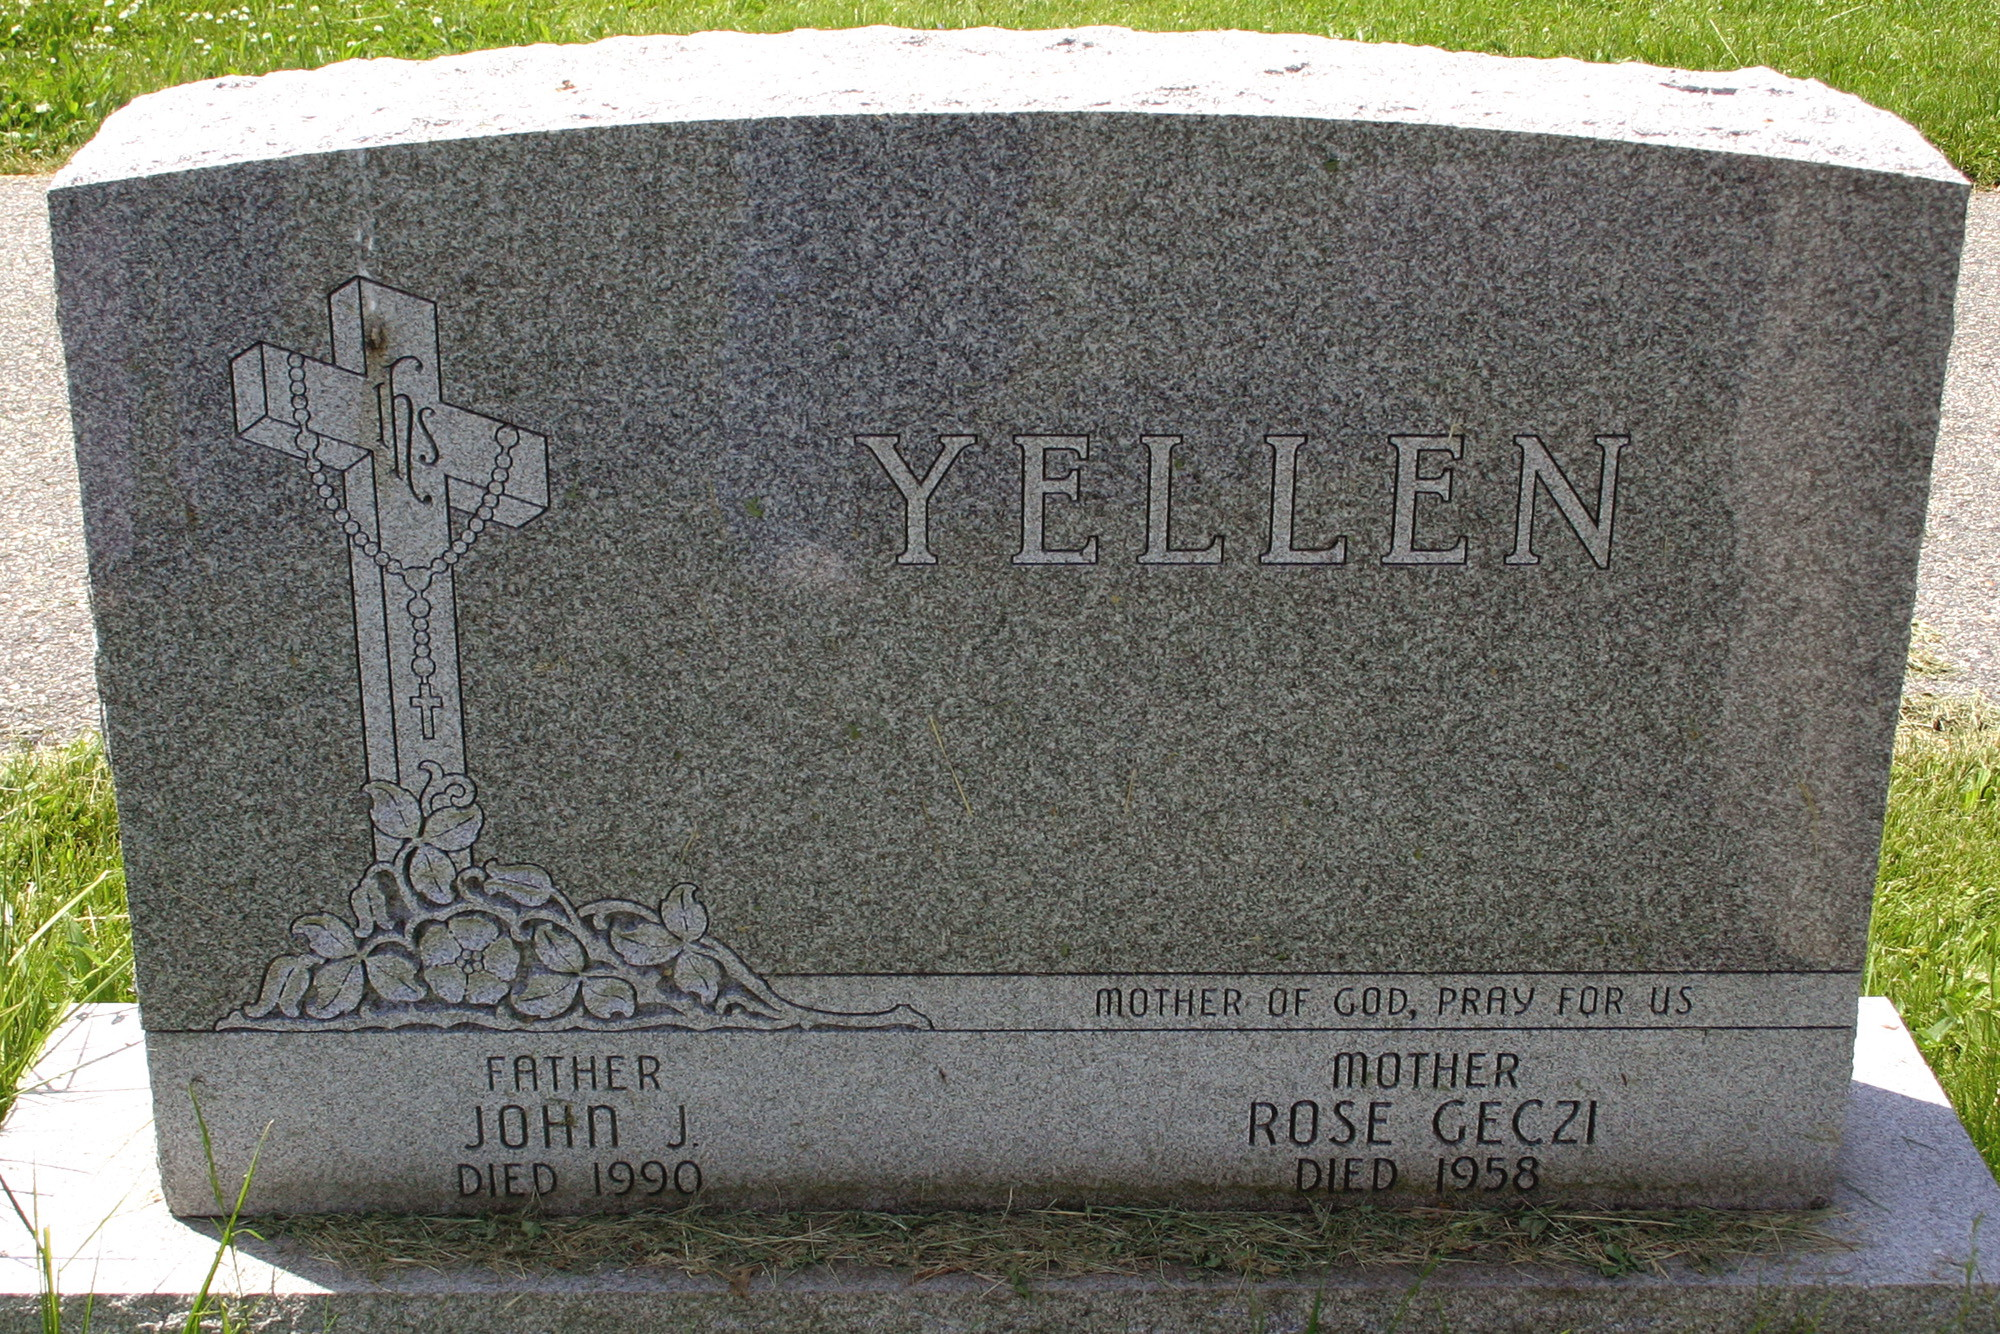 Julius Yellen